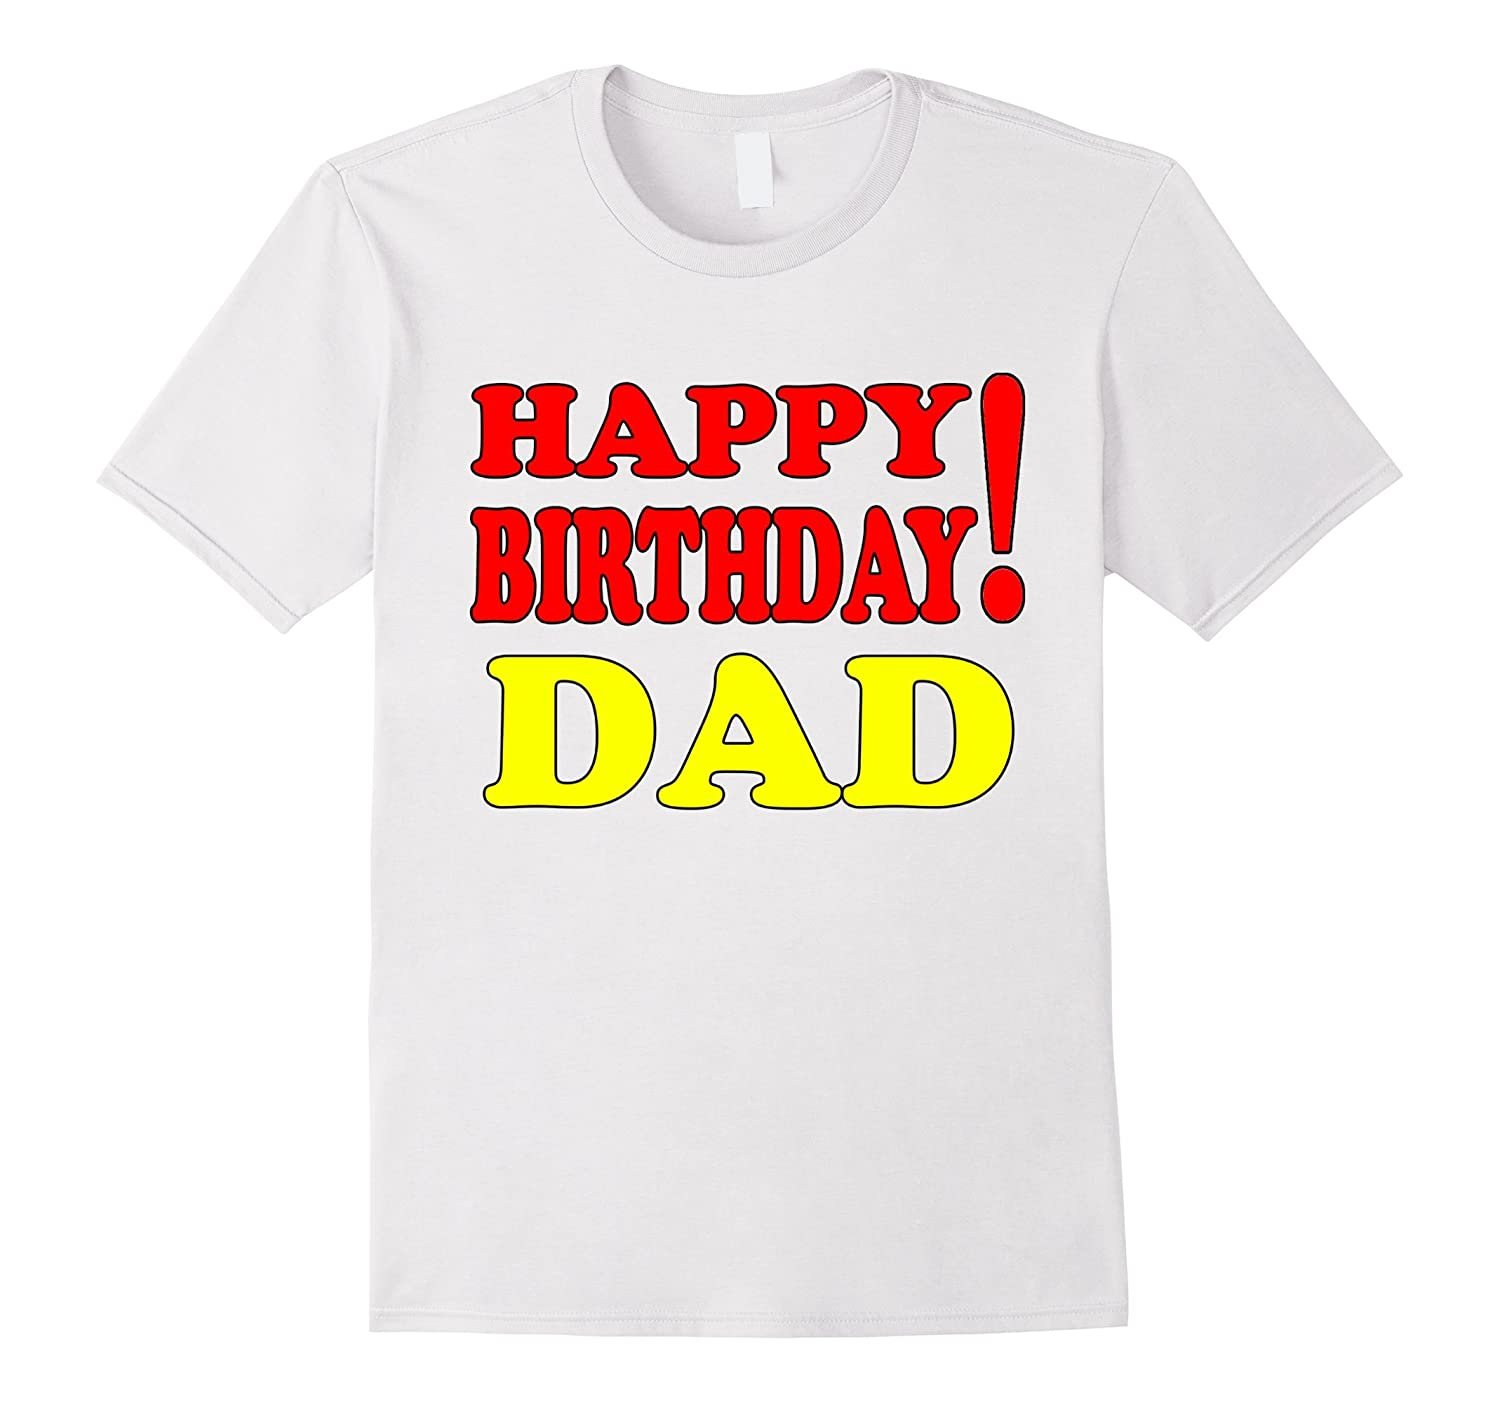 Coolest Ideas Gifts Shirt Happy Birthday To DAD